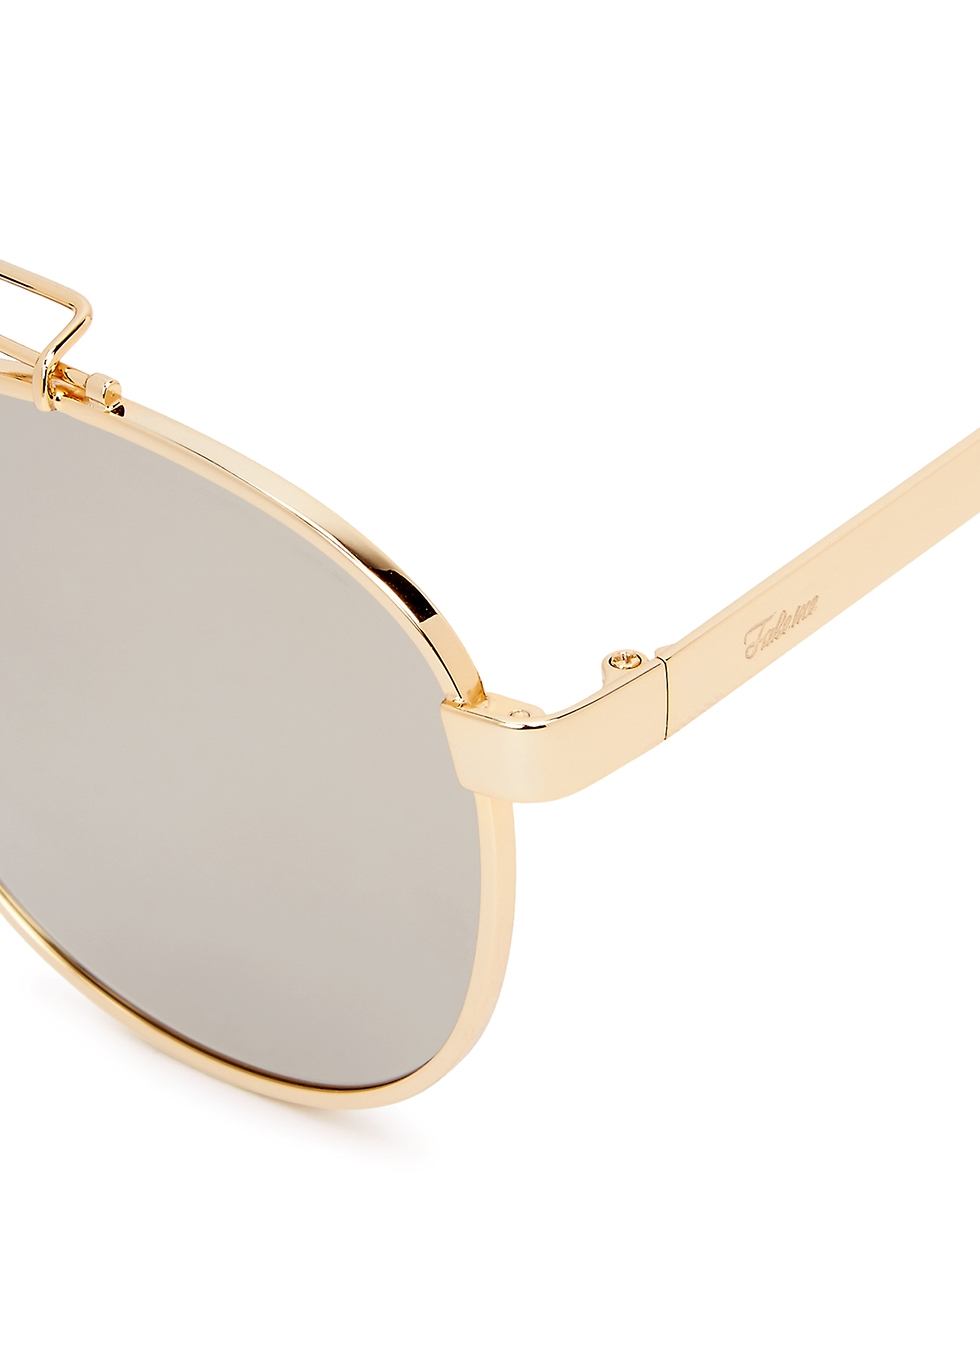 Ozzy mirrored oval-frame sunglasses - FAKE ME